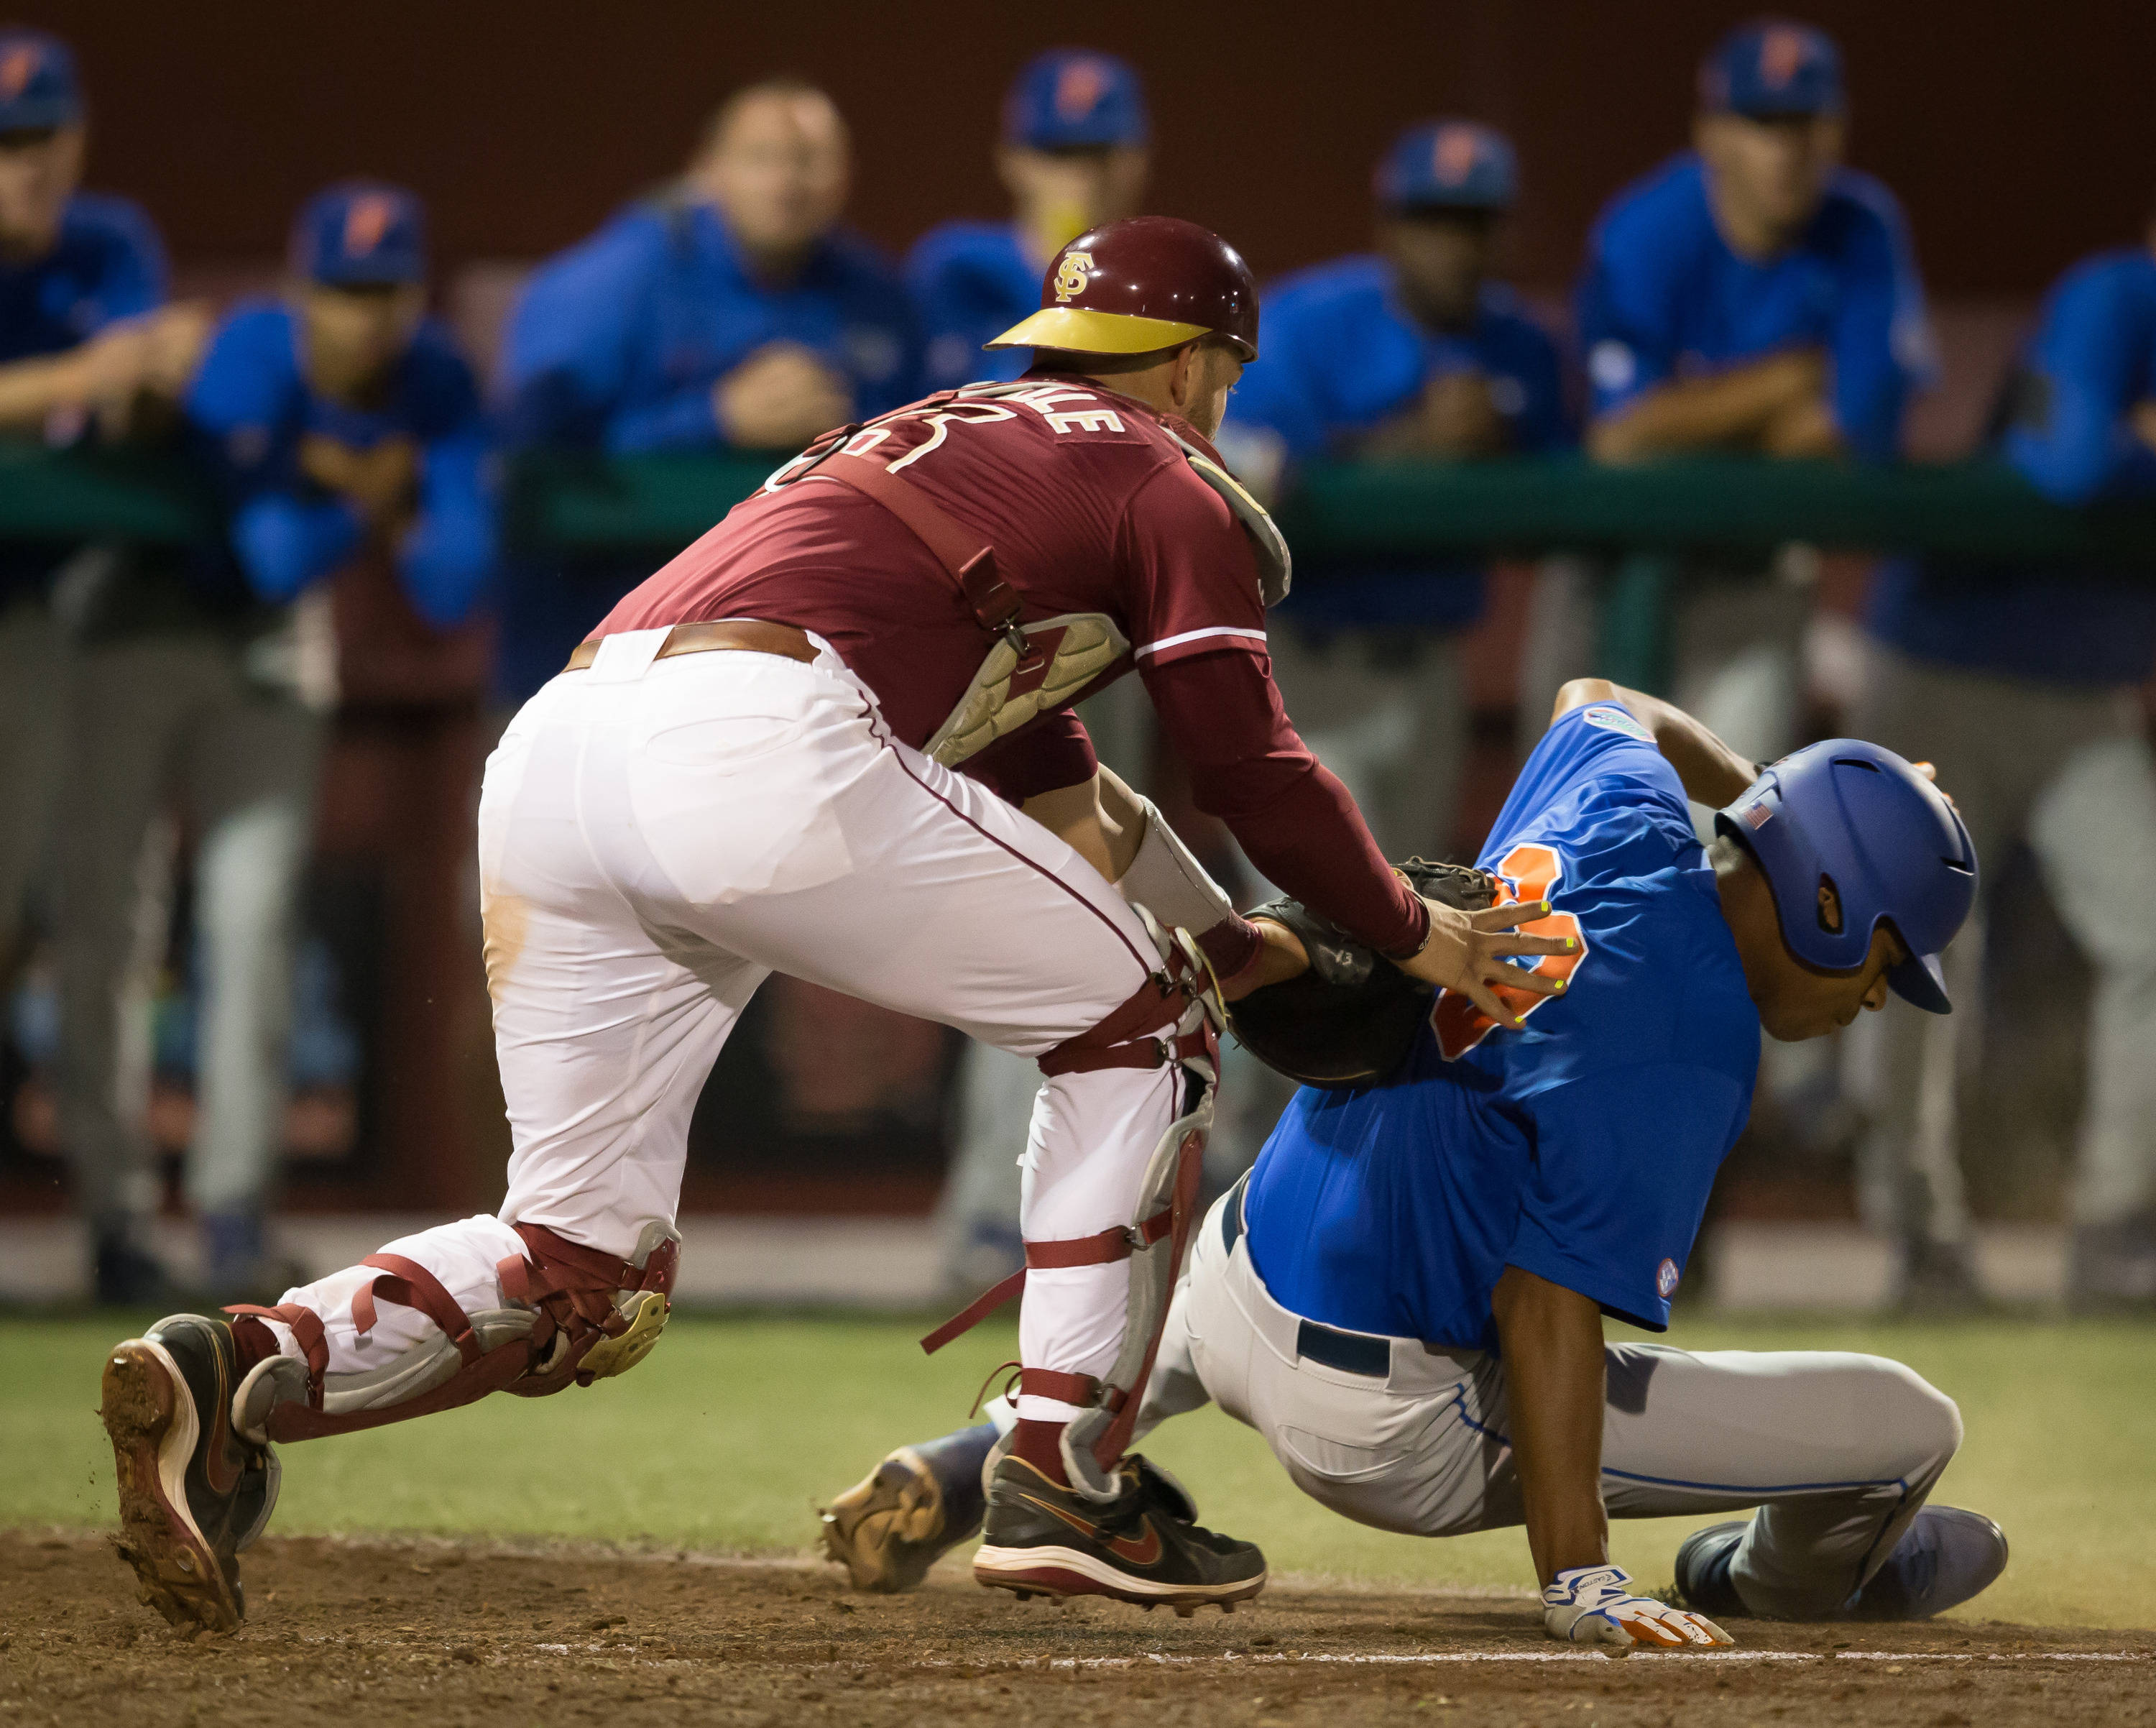 La De Calle Danny (13) tags out a Gator runner at home.